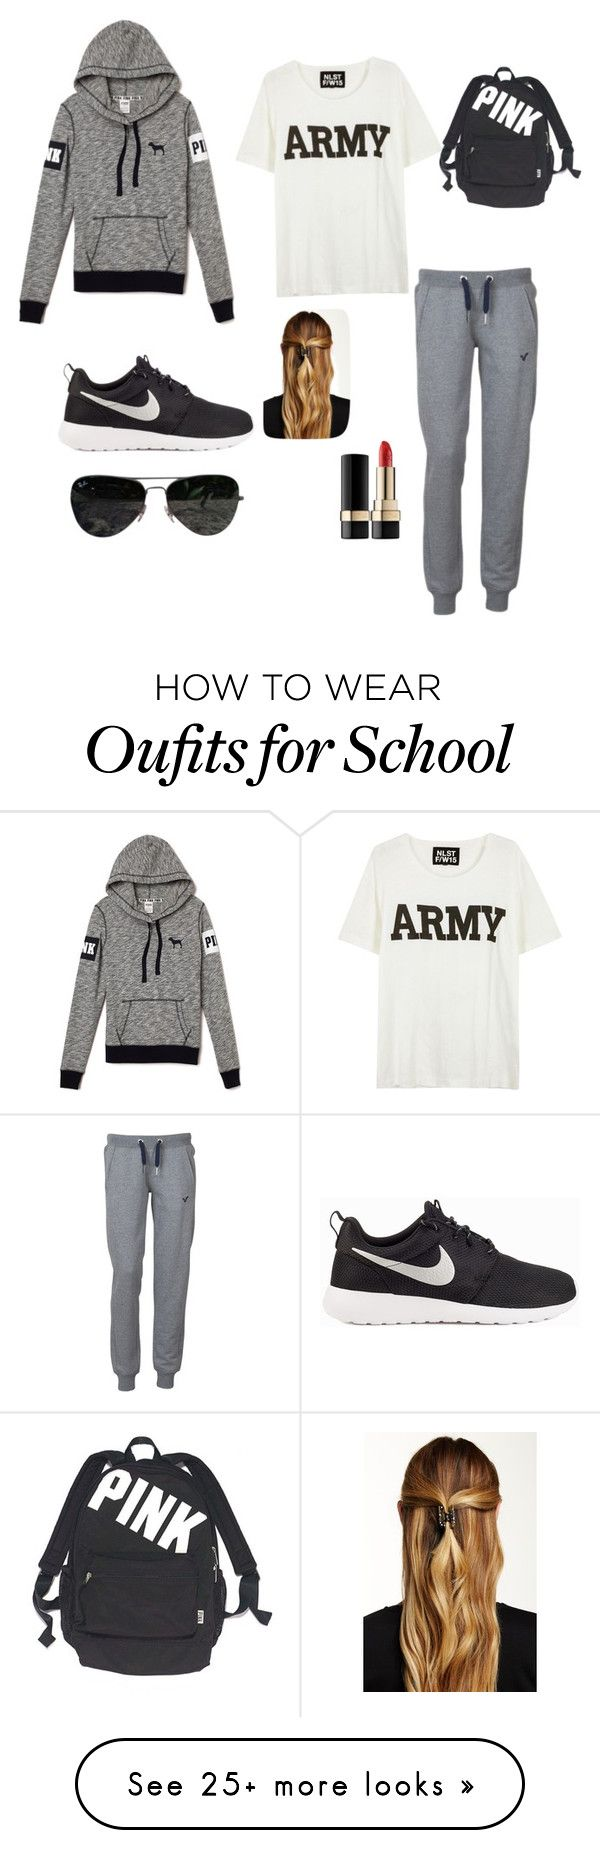 """School outfit"" by melinda-alvarez on Polyvore featuring Voi Jeans, NLST, NIKE, Victoria's Secret, Natasha Accessories, Ray-Ban and Dolce&Gabbana"